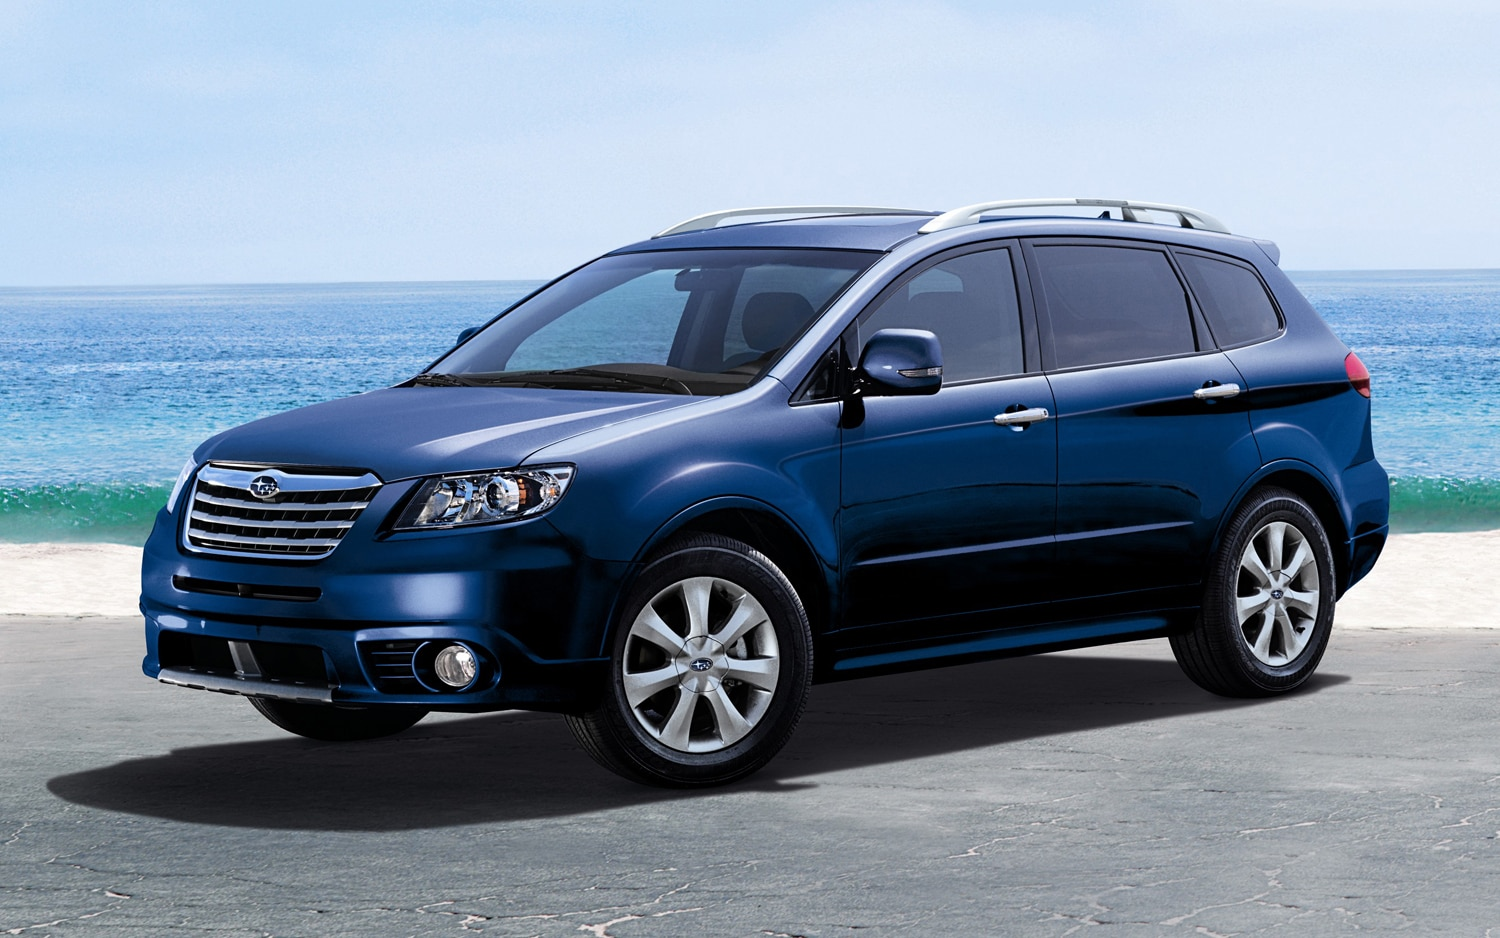 2012 Subaru Tribeca Touring Front Three Quarters1